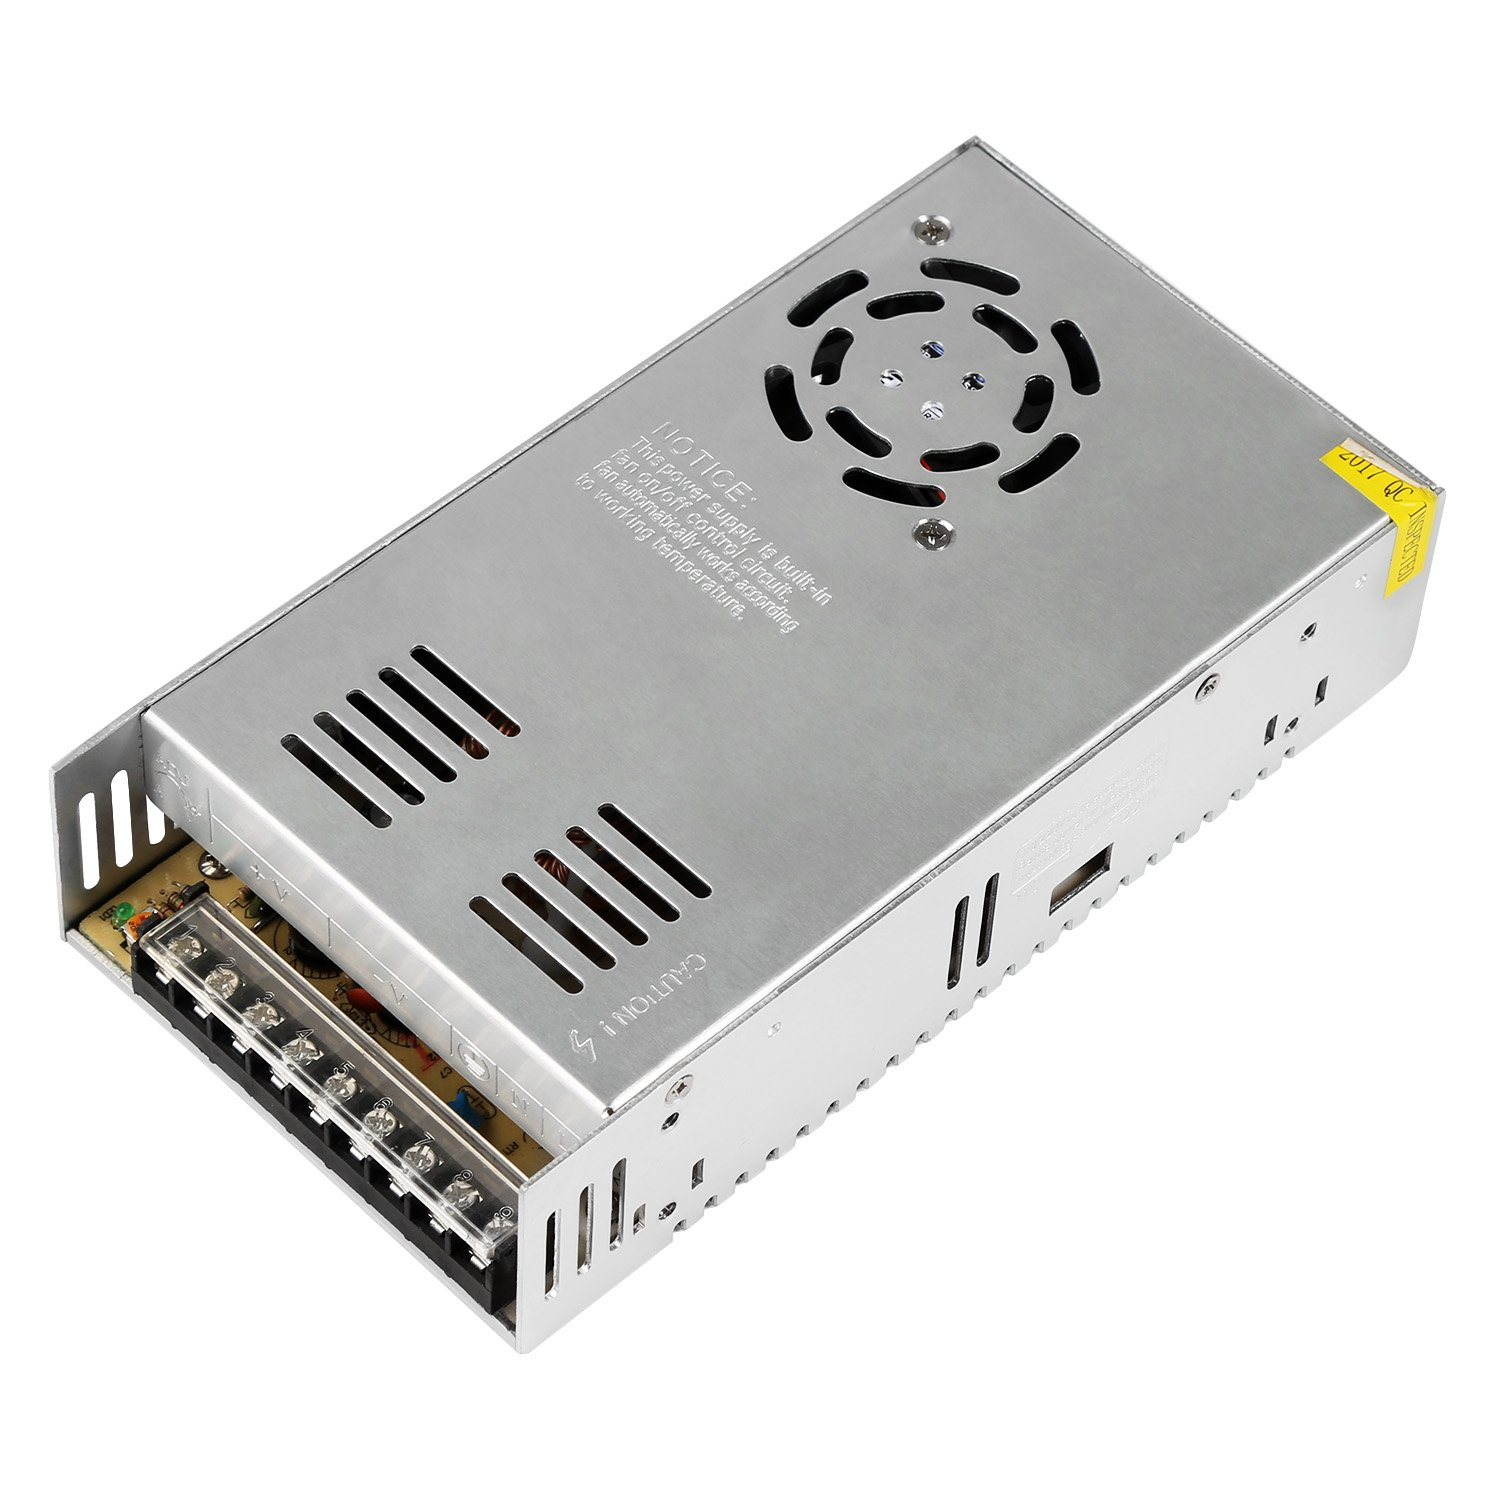 Computer Project NEWSTYLE 24V 15A Dc Universal Regulated Switching Power Supply 360W for CCTV Radio